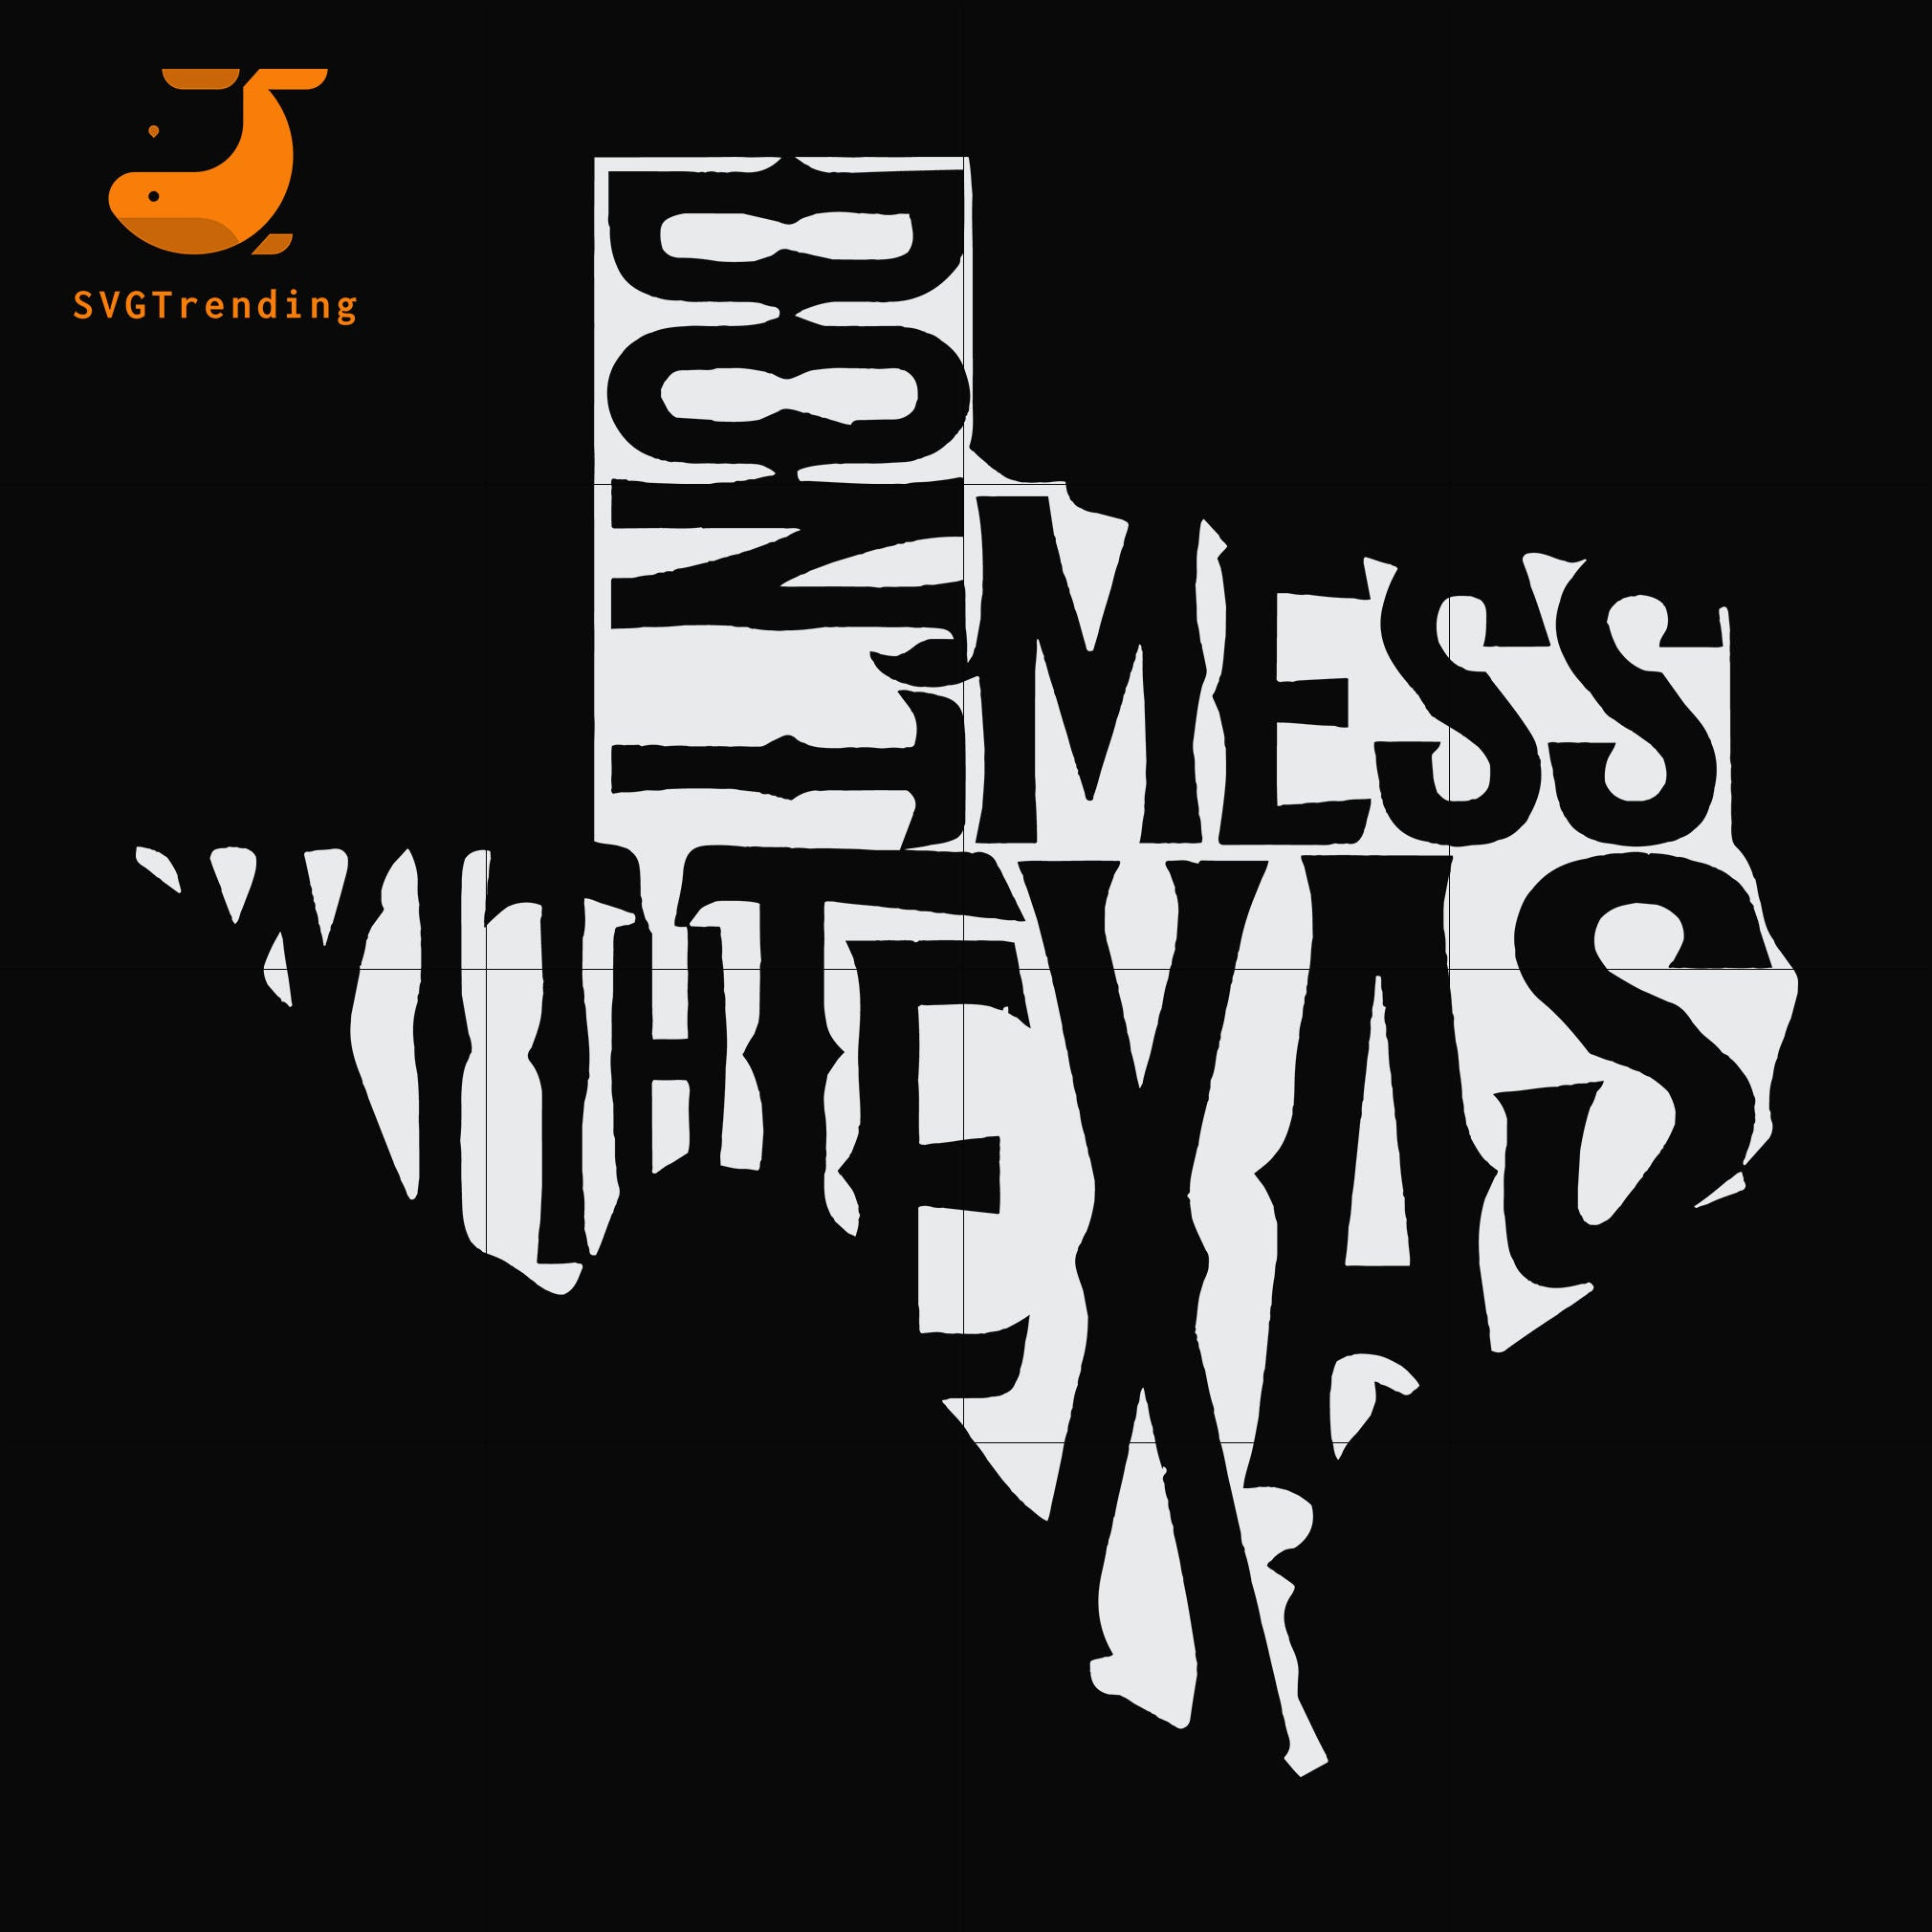 Dont mess with texans svg, dxf, eps, png digital file